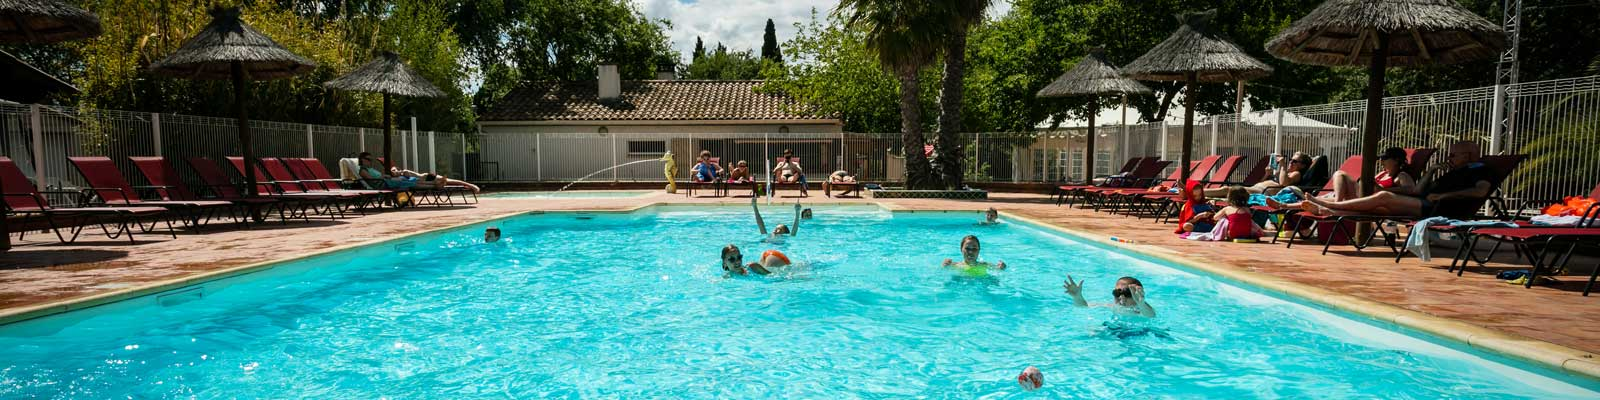 camping location moulin saint anne